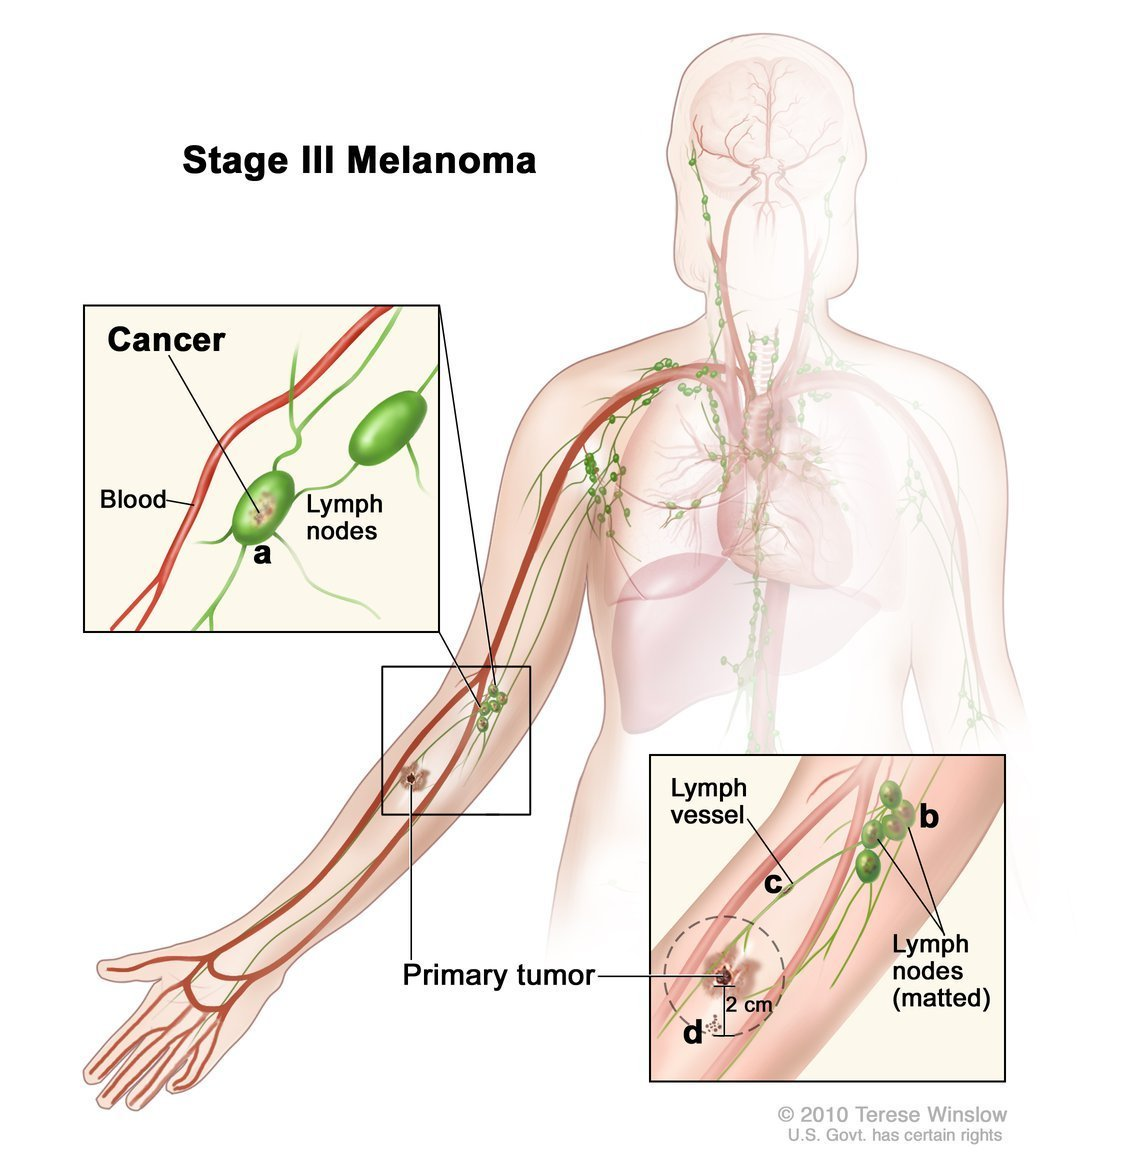 hight resolution of  of the body than other types of skin cancer https www cancer gov types skin patient melanoma treatment pdq section 67 pic twitter com tfykmkcenj